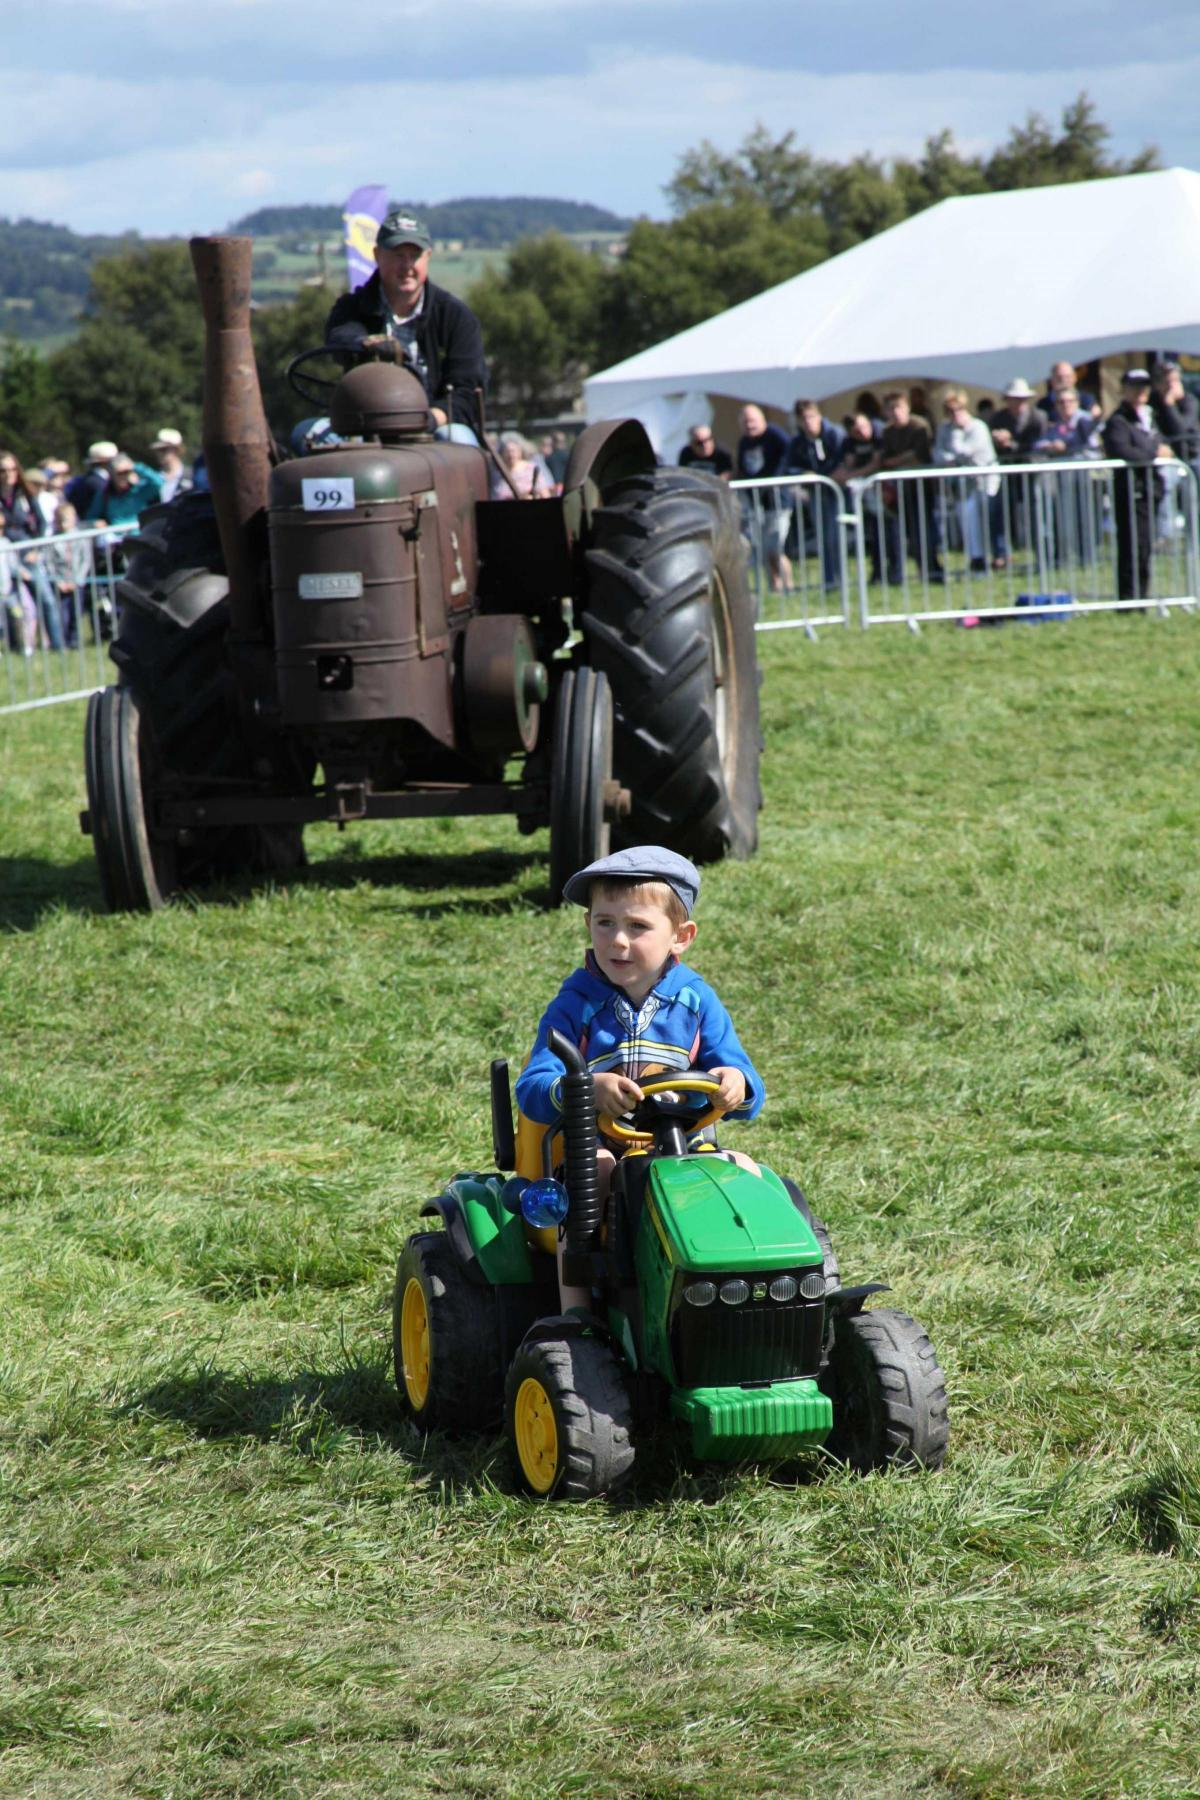 SHOWTIME: The Wensleydale Show attracted visitors and exhibitors of all ages